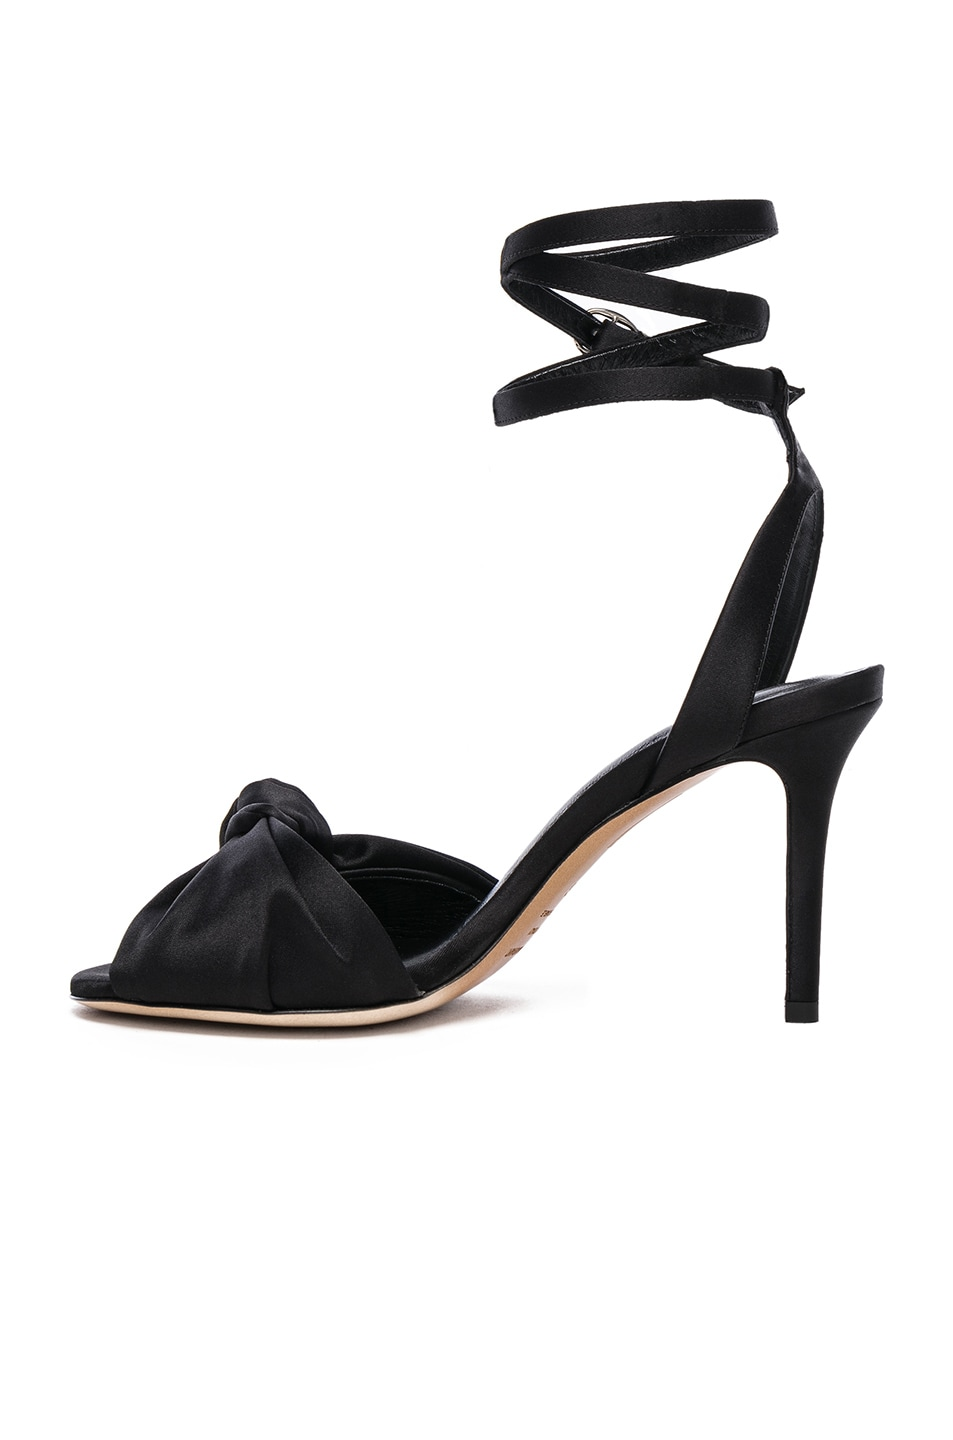 Image 5 of Isabel Marant Satin Abenya Heels in Black